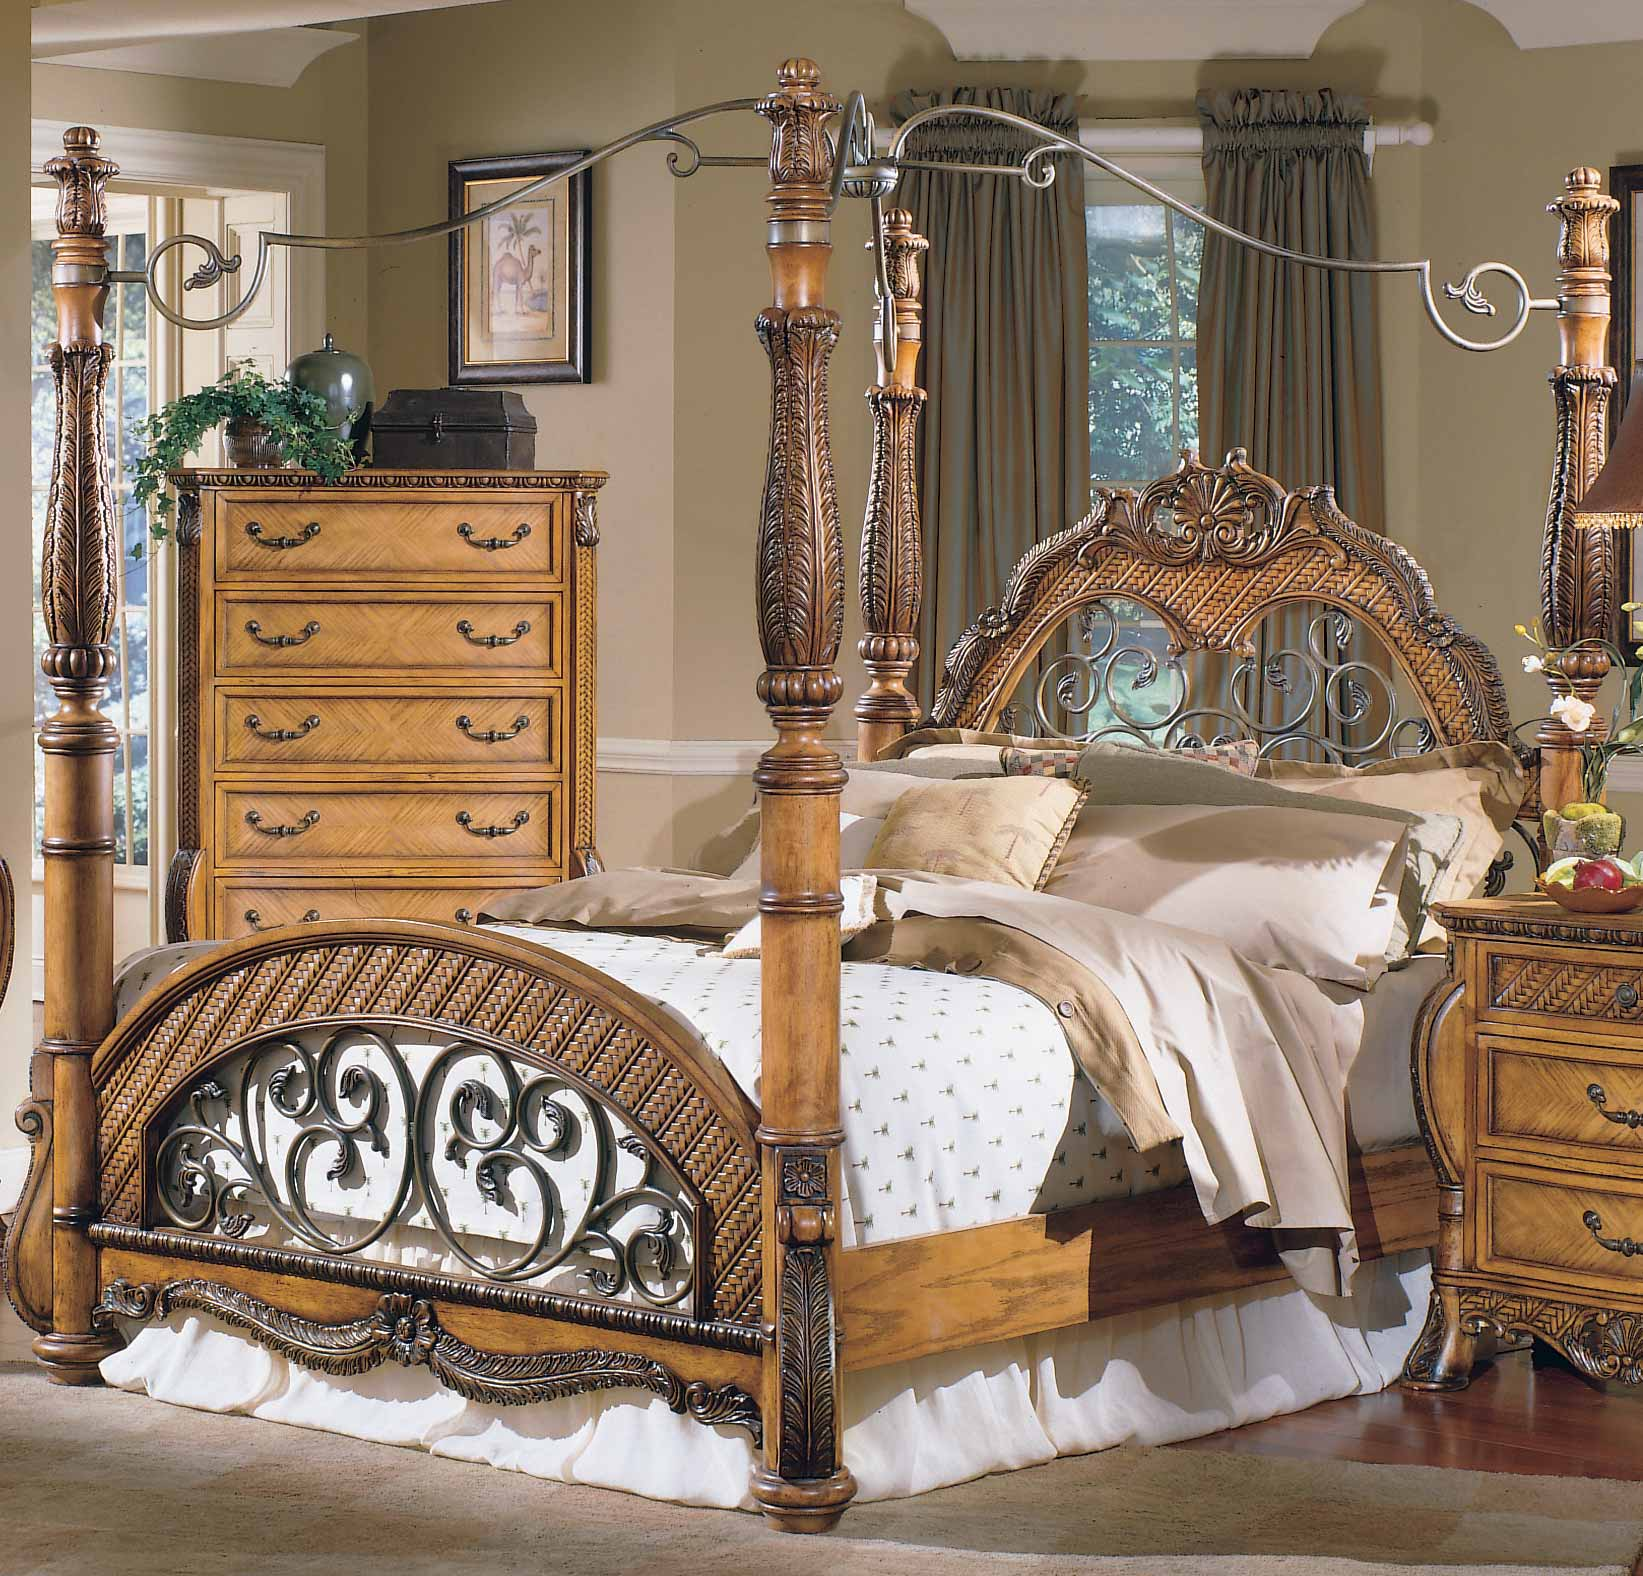 Homelegance South Beach Canopy Bed & Homelegance South Beach Canopy Bed 853-1 ...